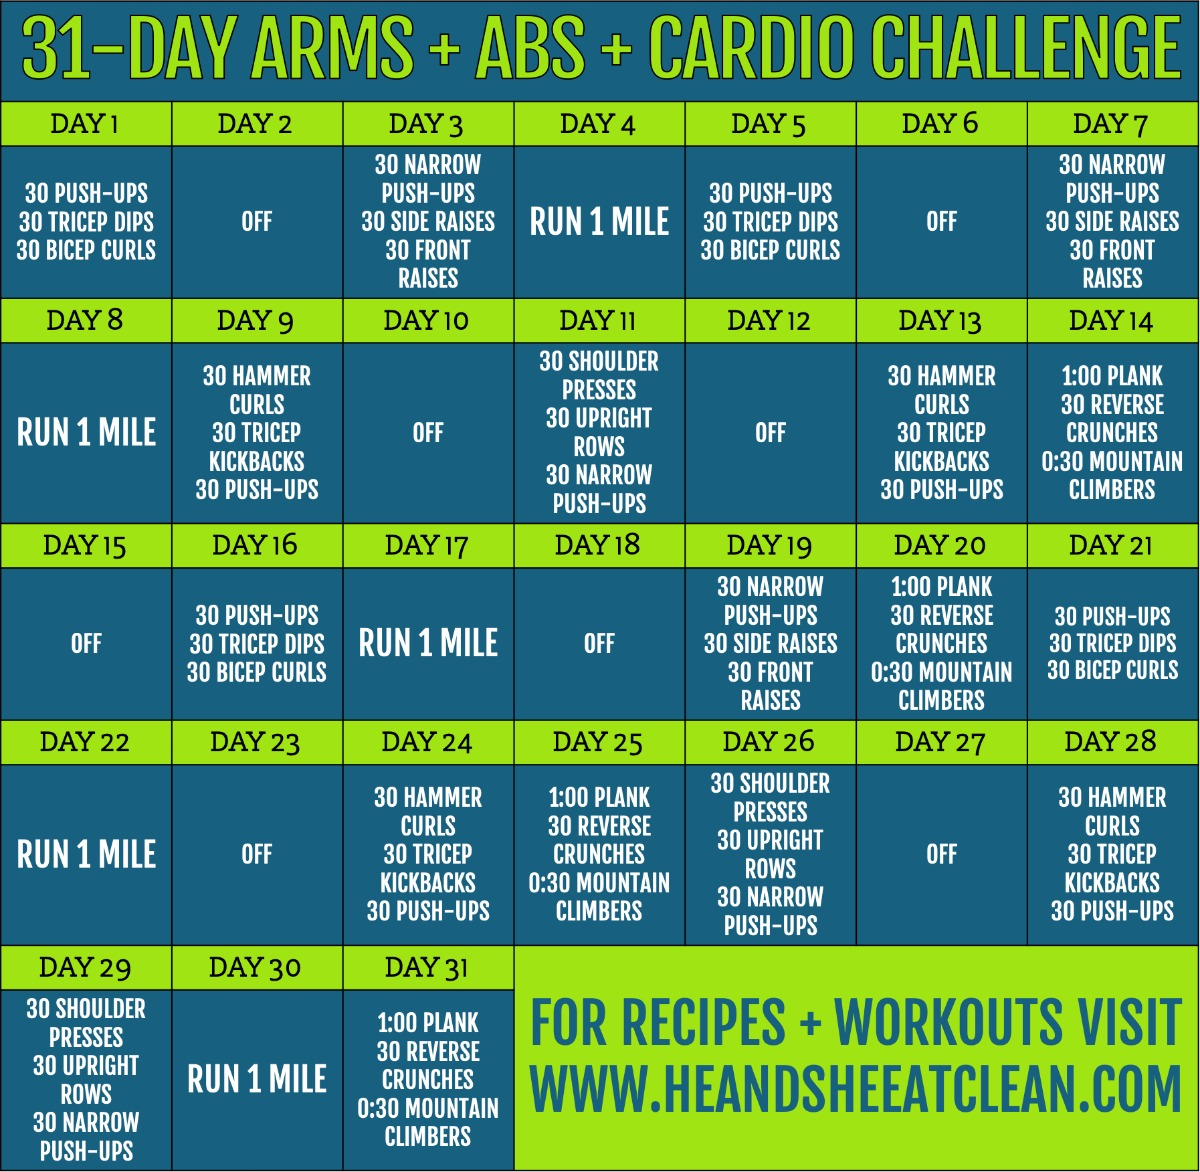 31 day arms, abs, and cardio challenge calendar